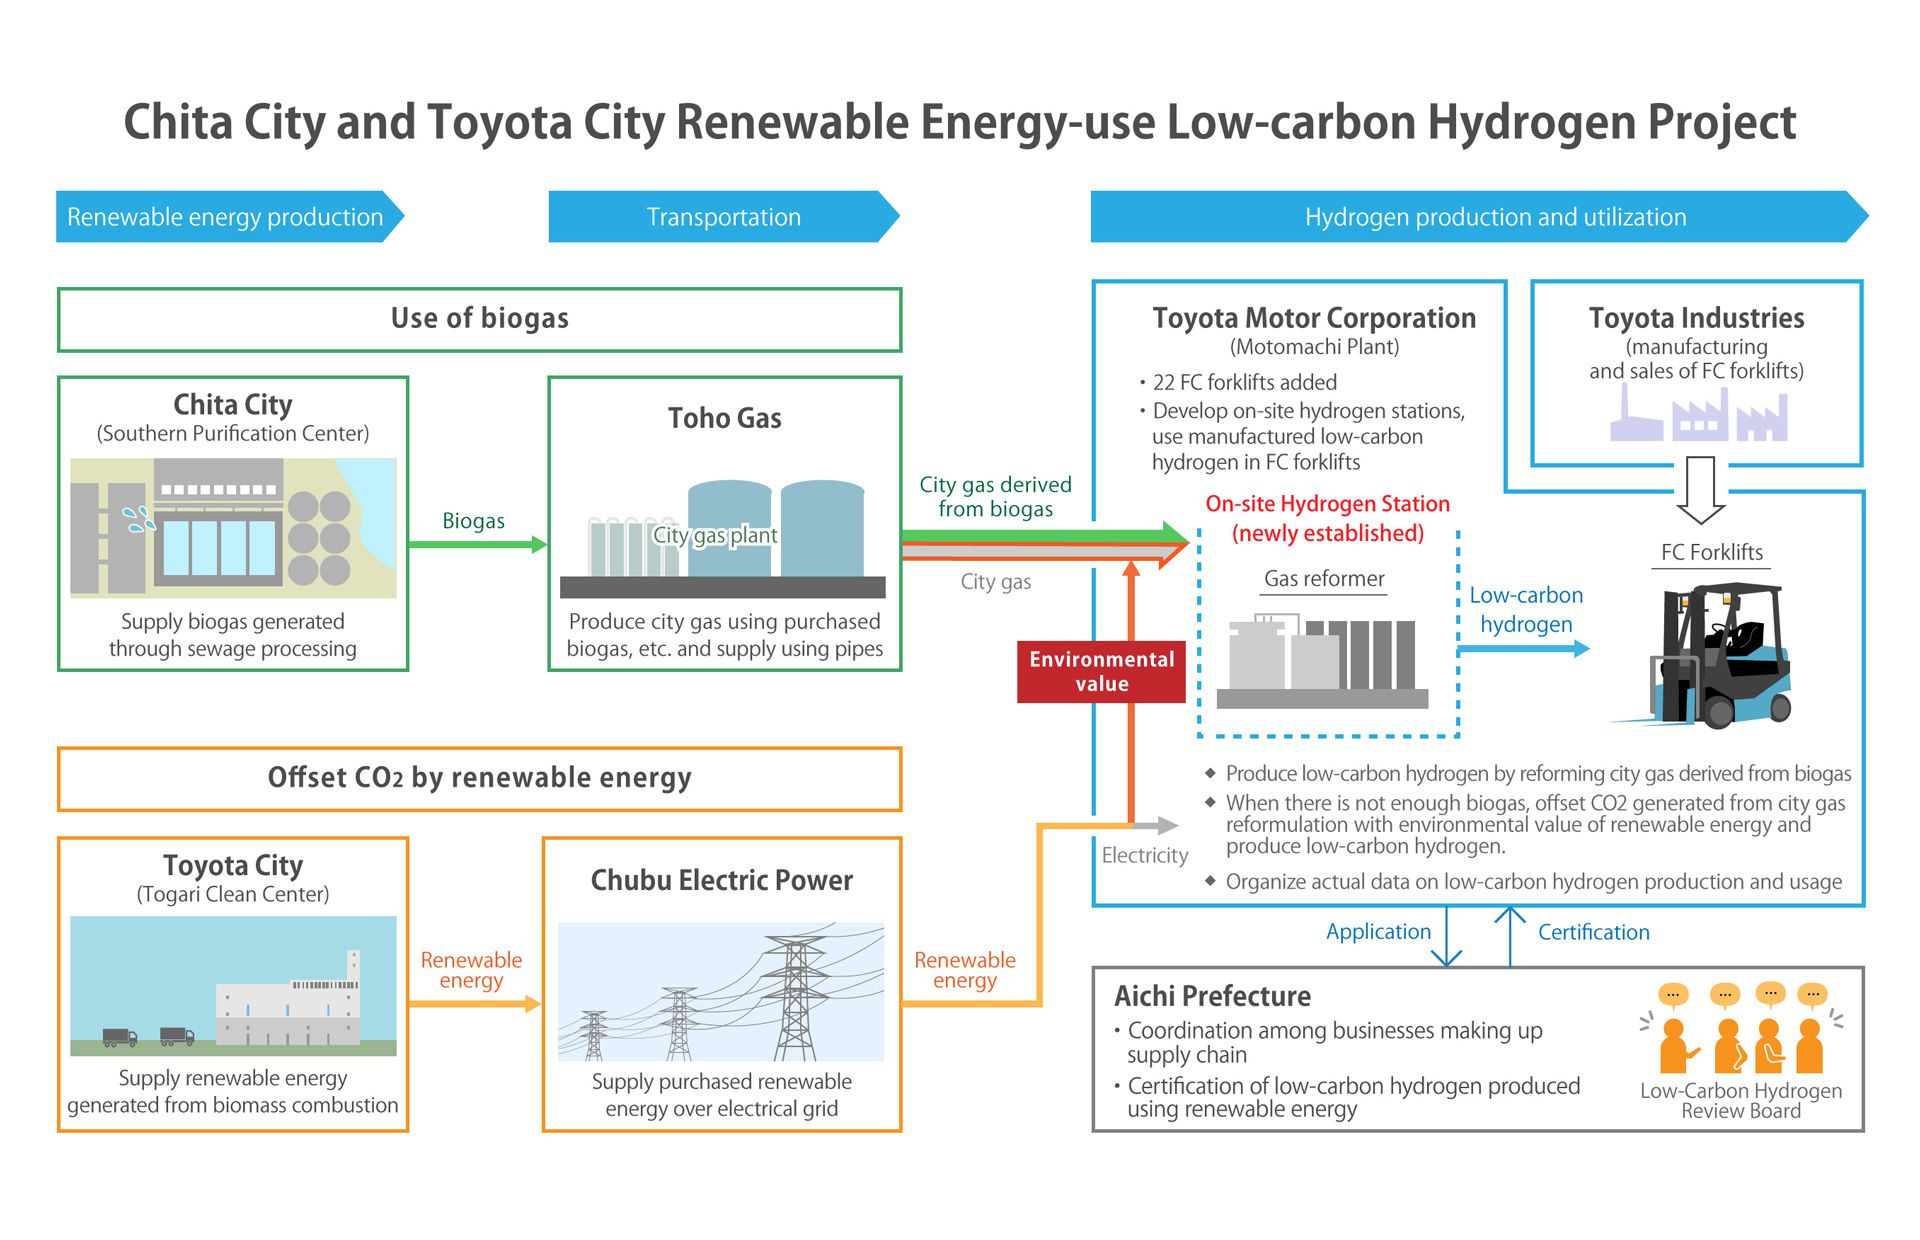 Plan to Develop Aichi Low-carbon Hydrogen Supply Chain Moves